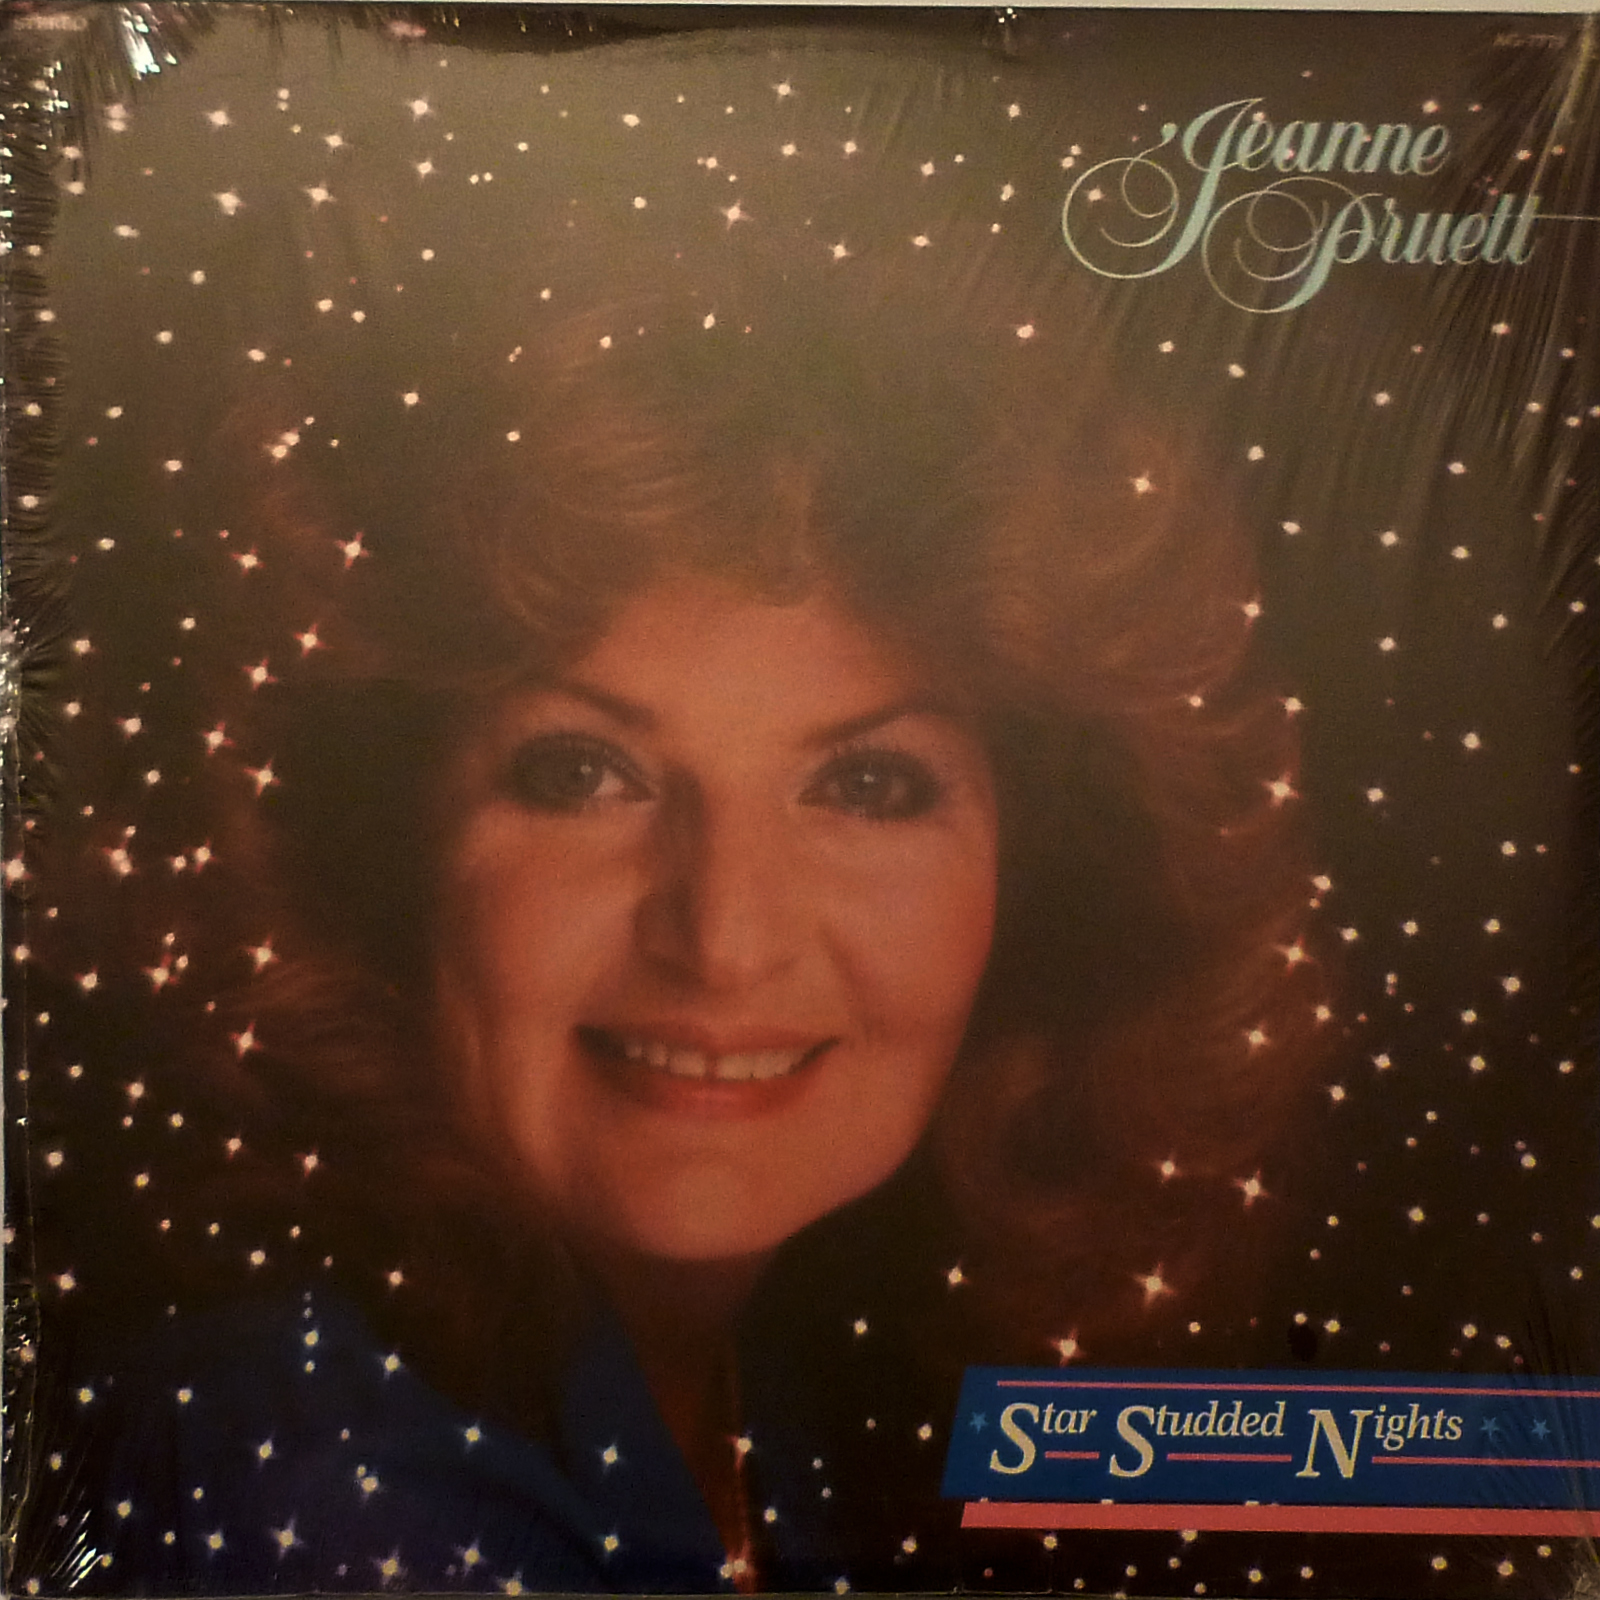 Jeannie Pruett Star Studded Nights LP